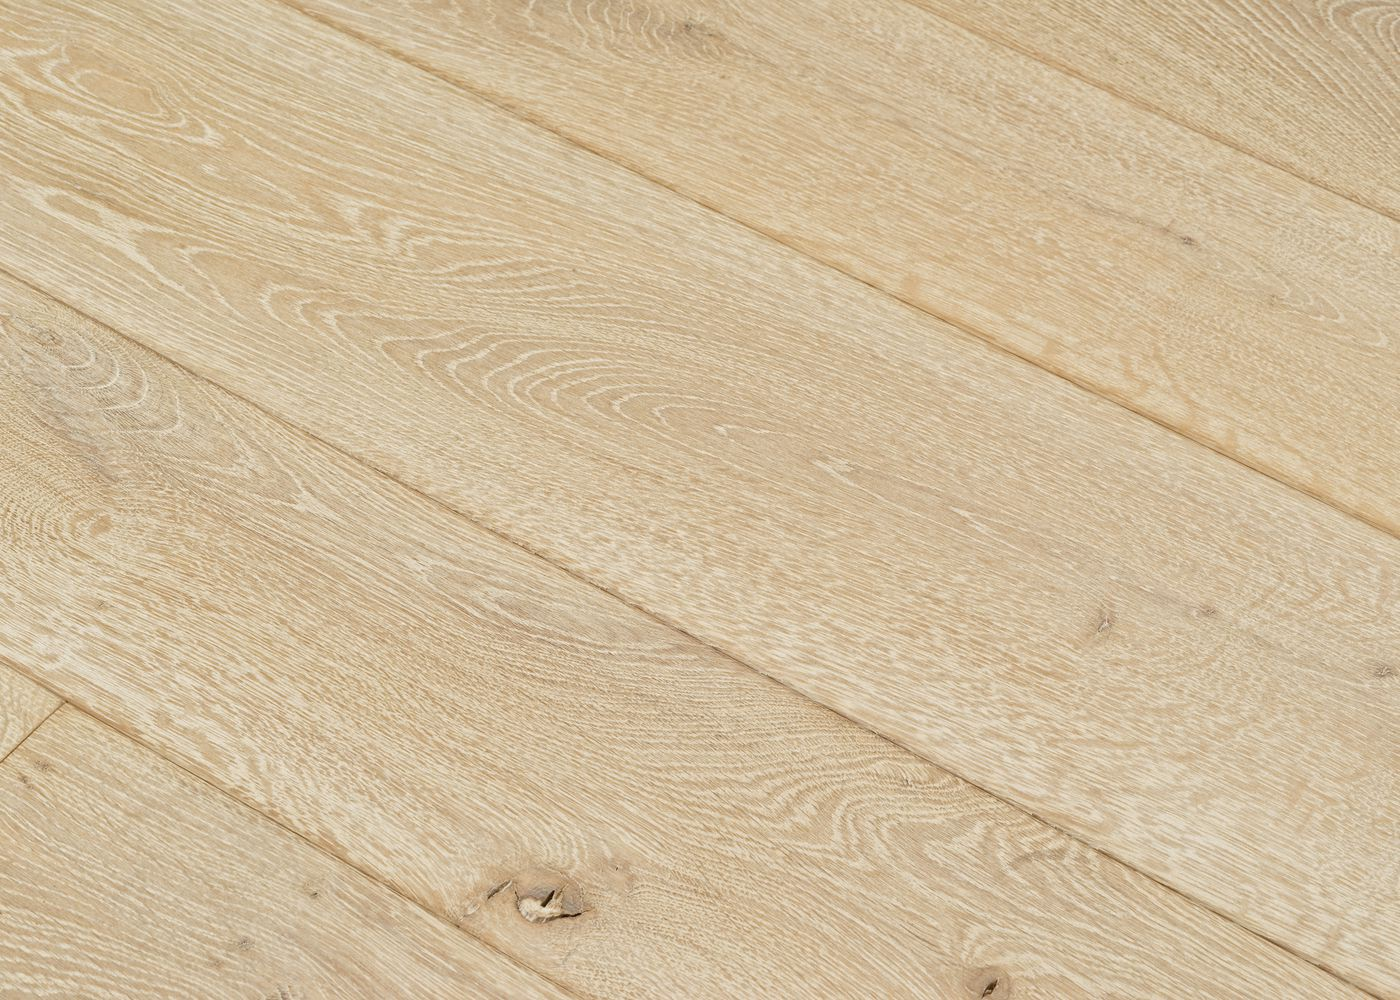 Parquet chêne massif BURANO noeuds ouverts Matière noeuds ouverts huile cire 20x160/180/200x400-2400